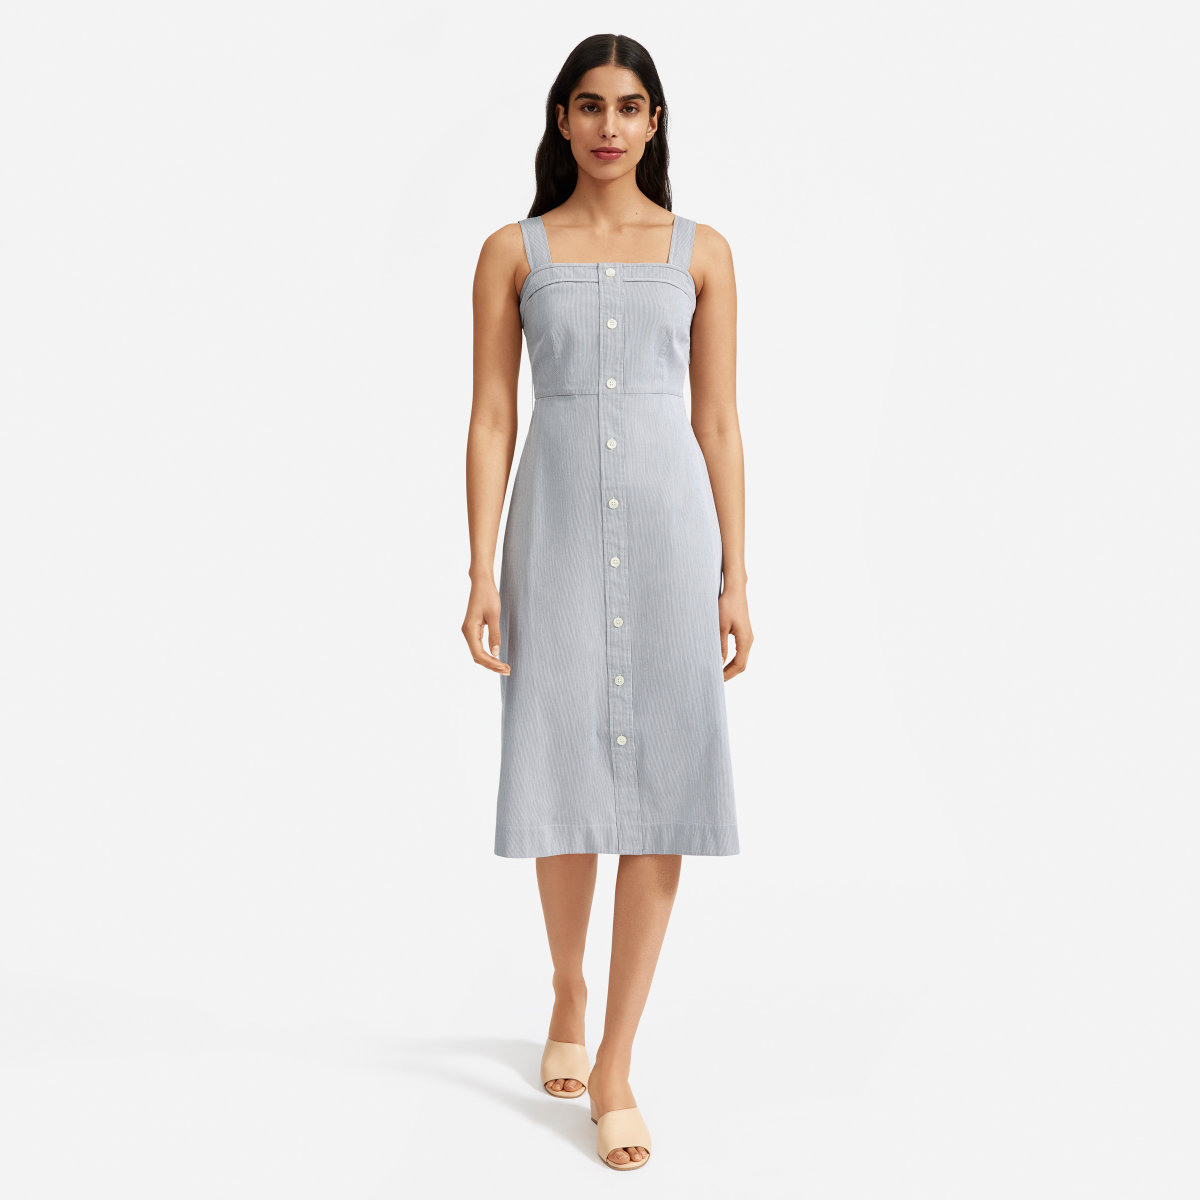 7cec5fa445b91 The Cotton Weave Picnic Dress